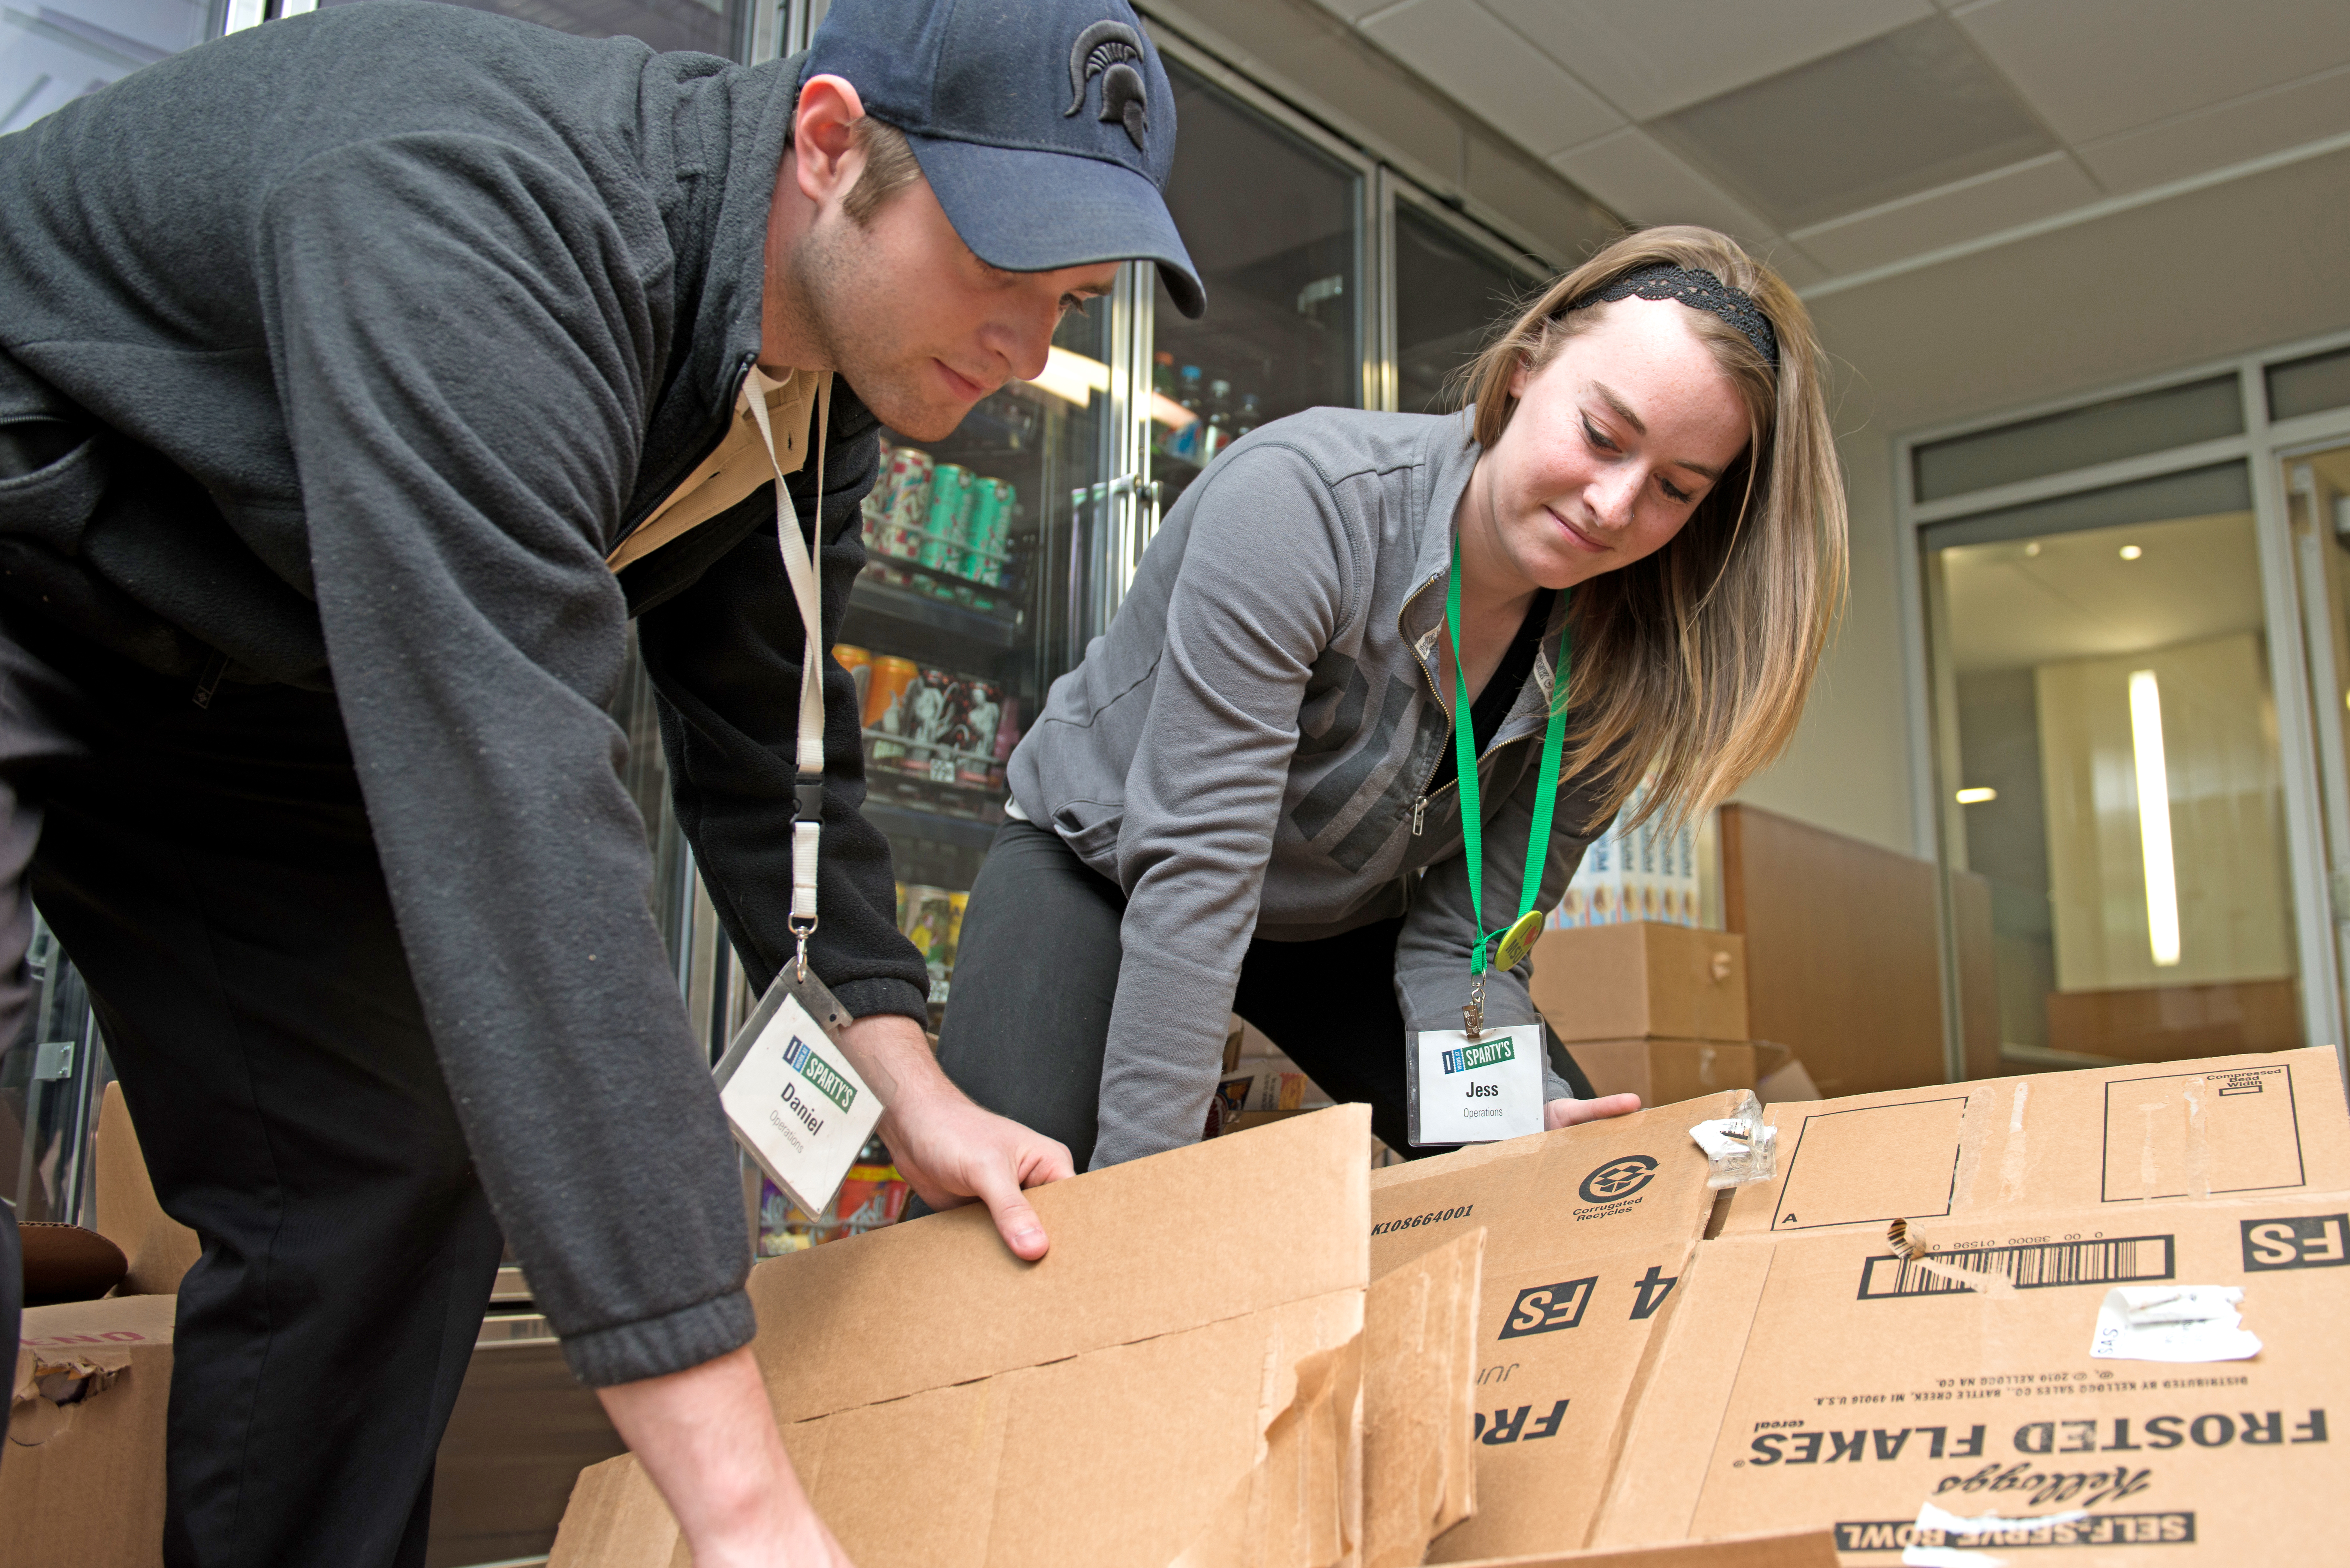 MSU Students employees in the MSU Union store prep boxes for the recycle bins.